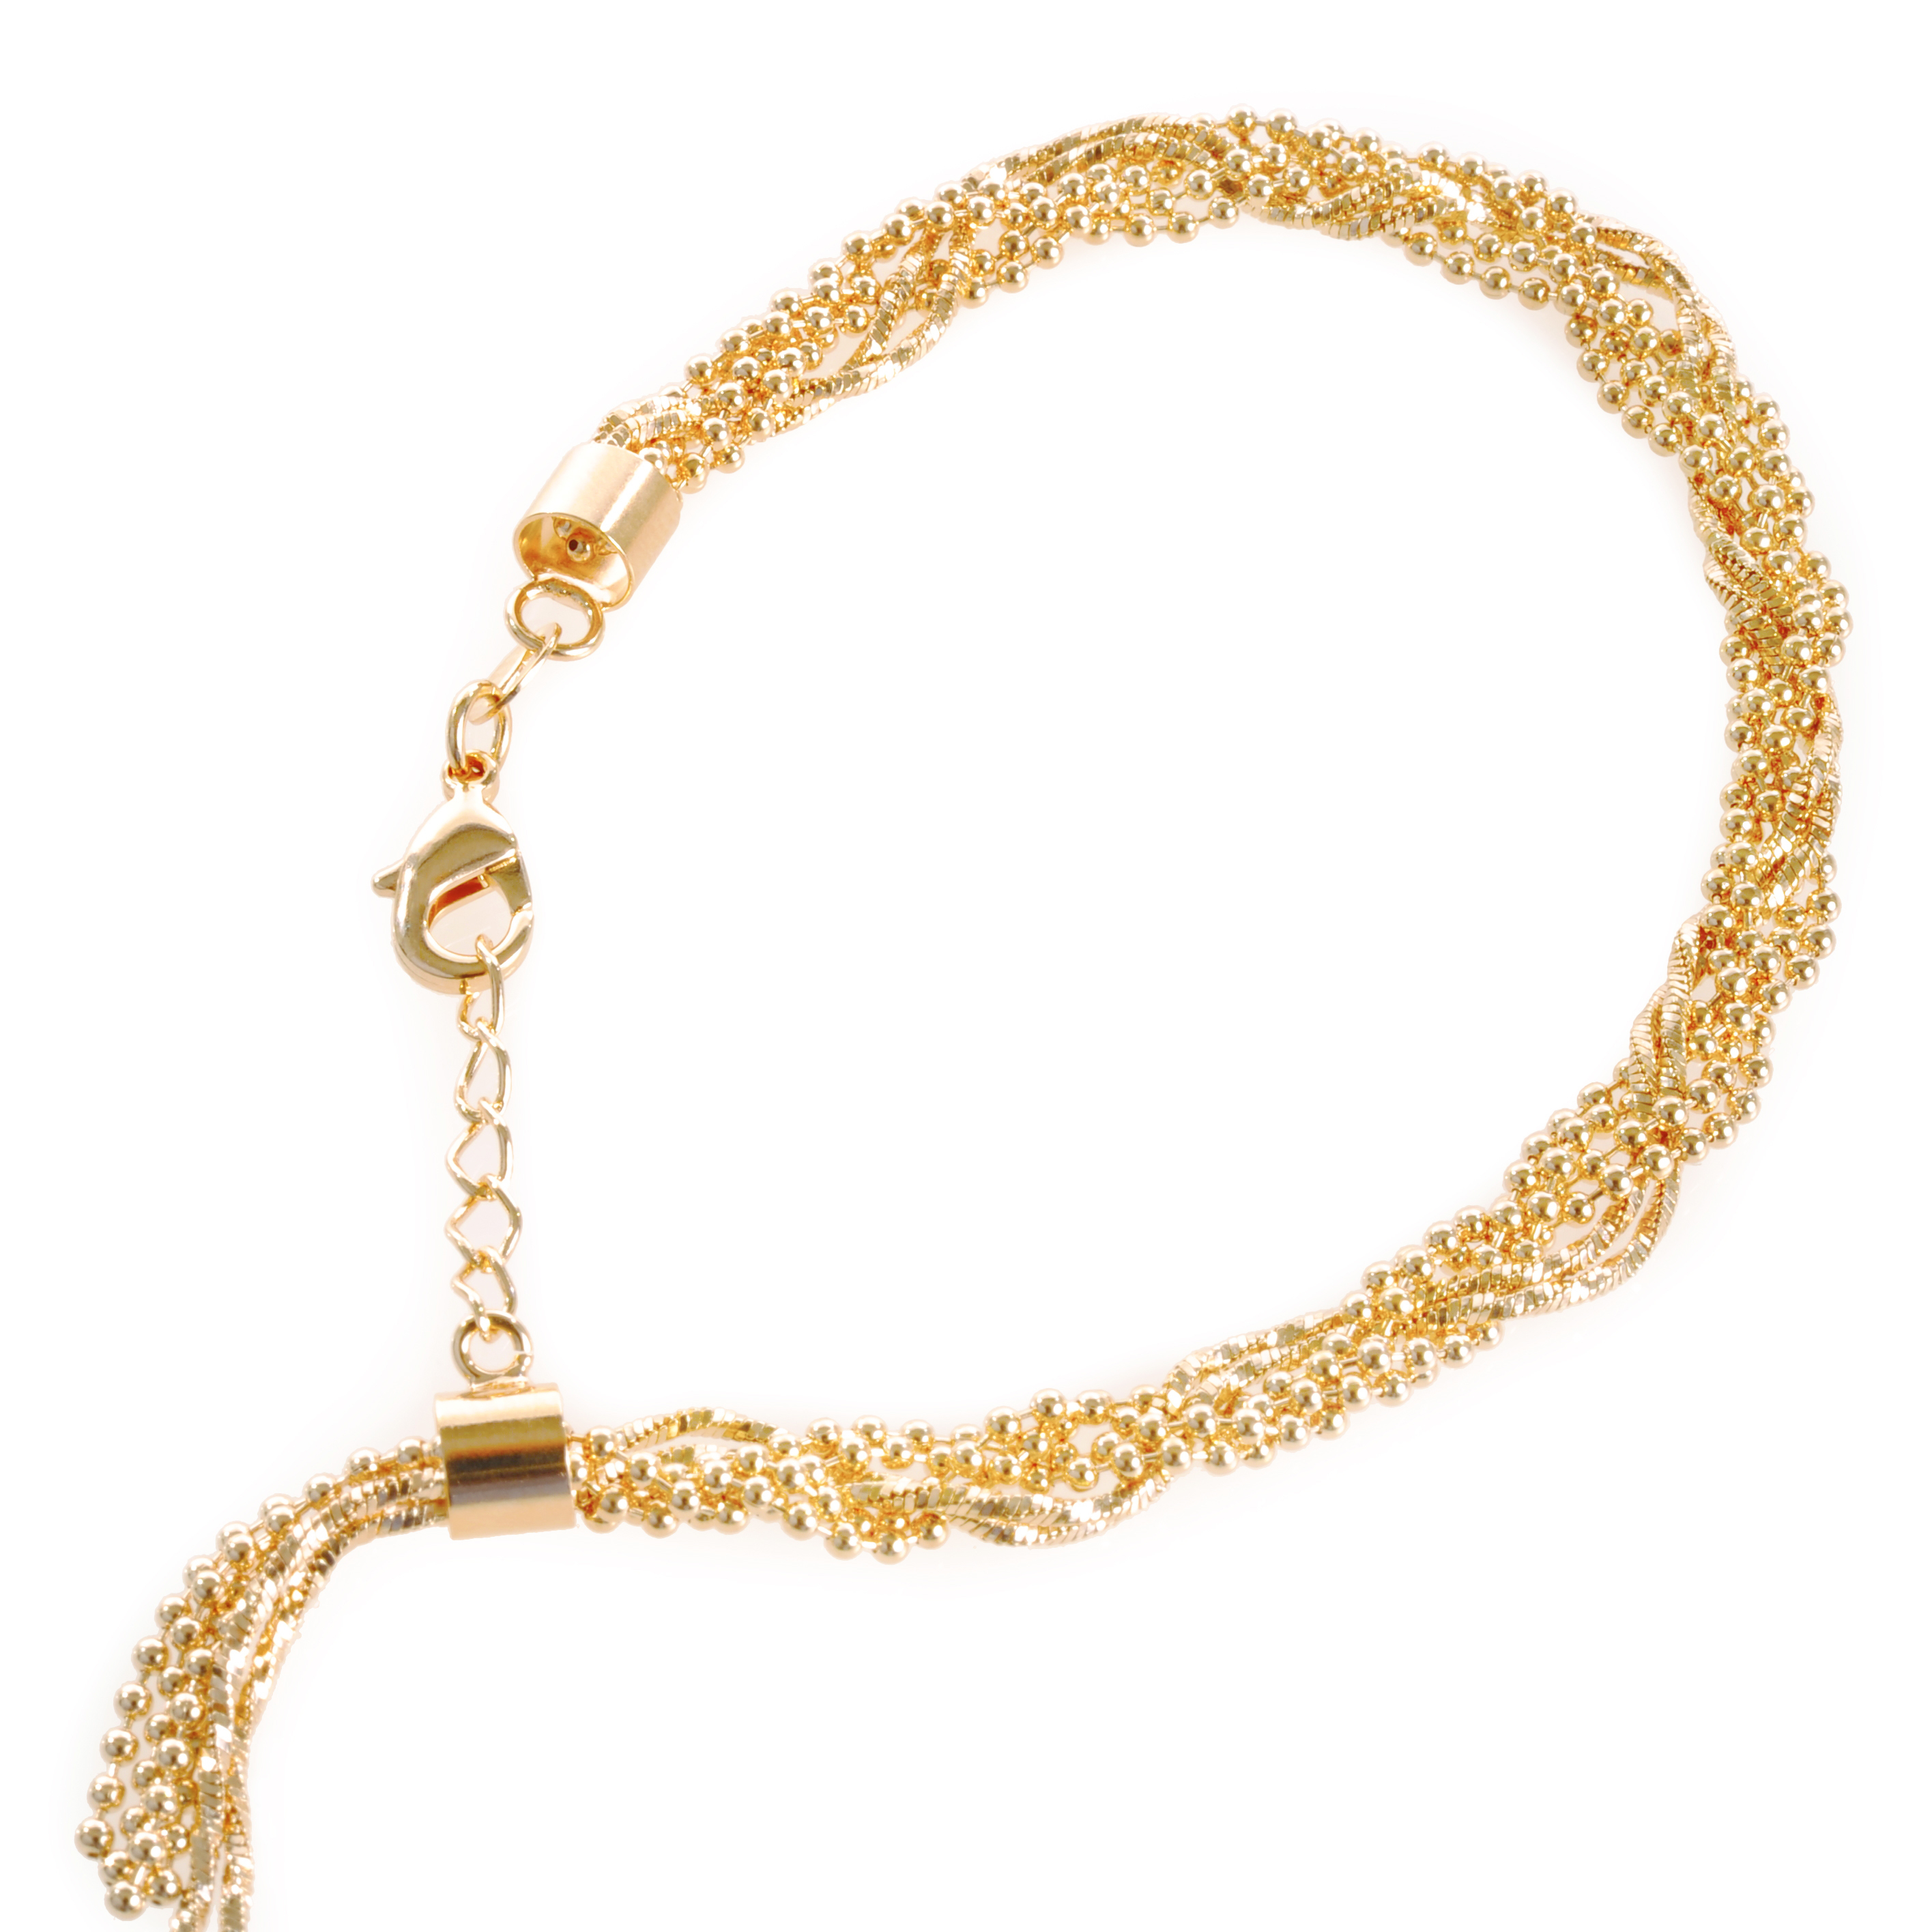 summer the bracelet accessory ankle z fashion jennifer gold can why shopping day anklet every wear of elle is you anklets